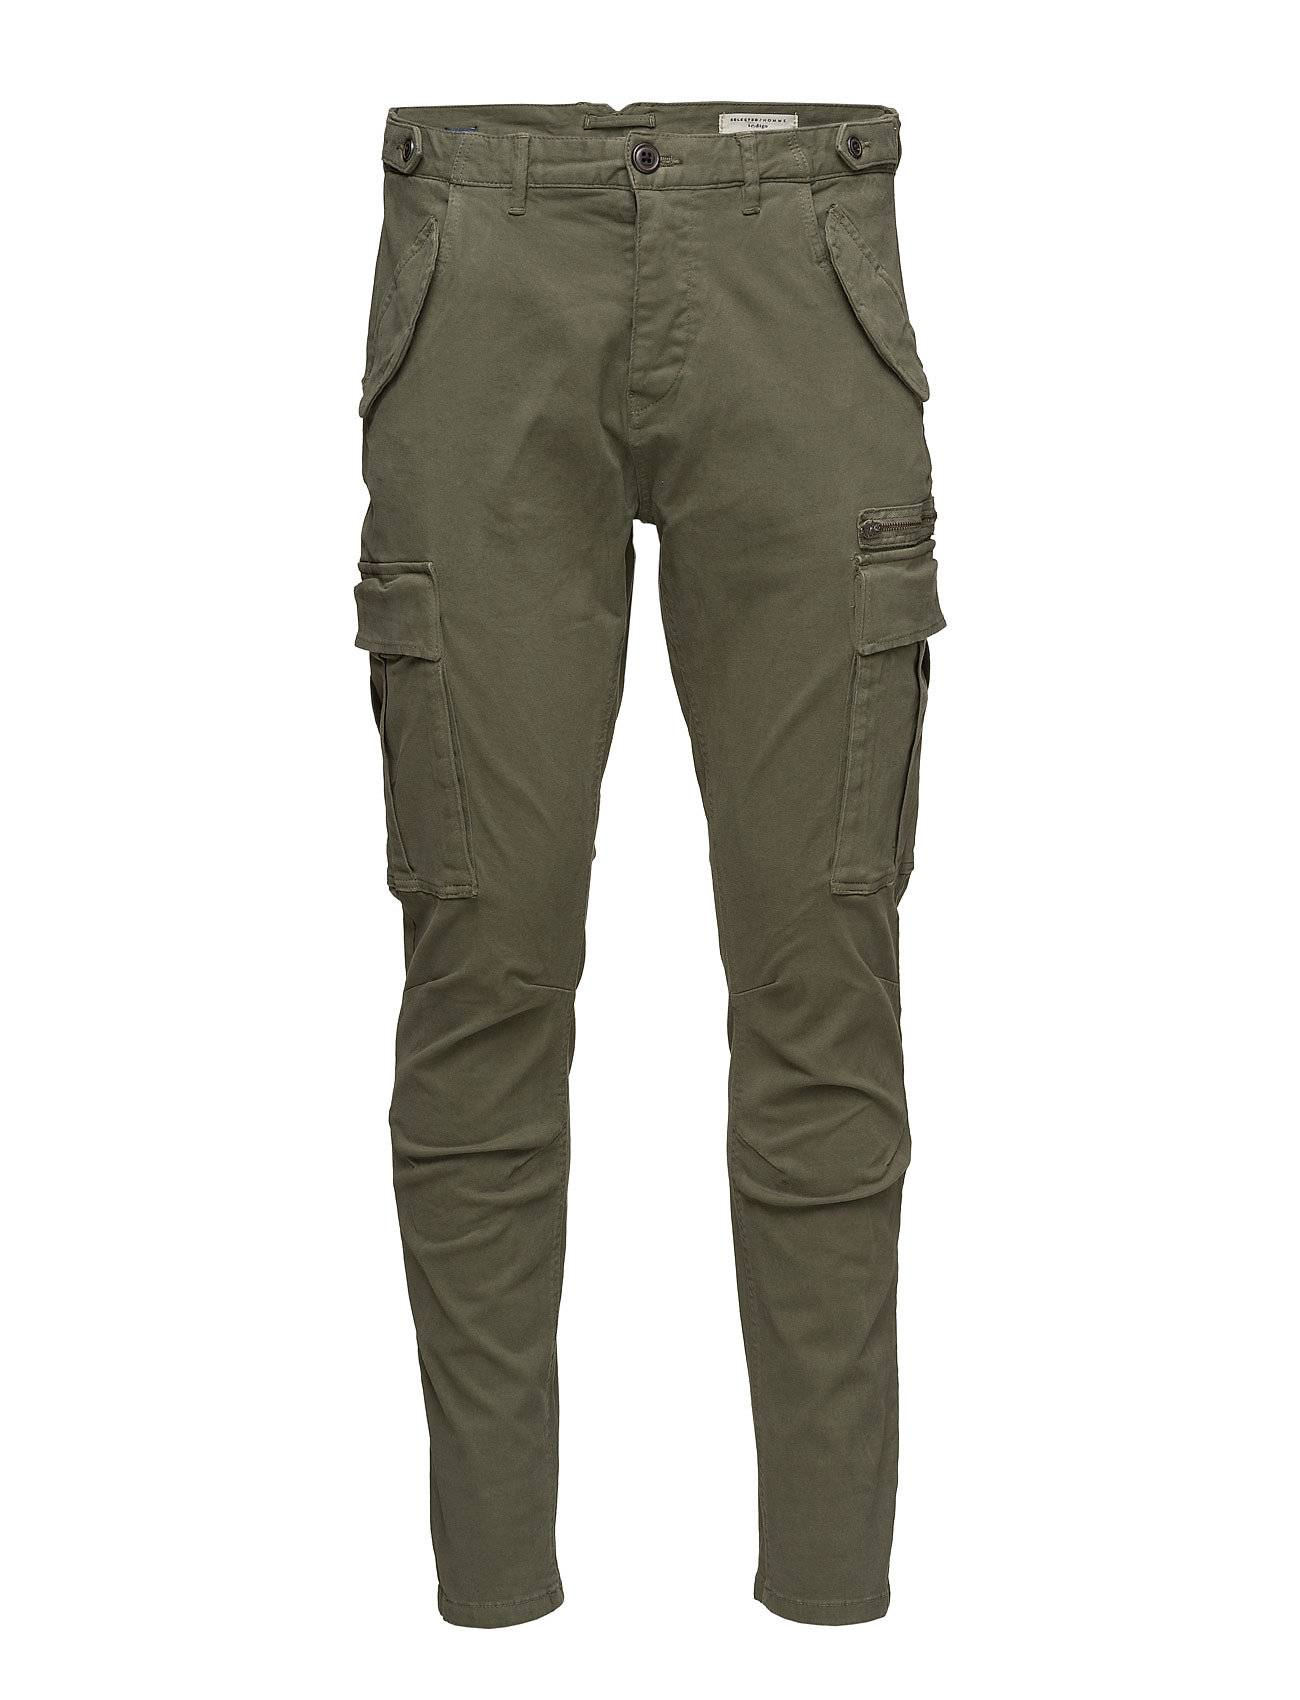 Selected Homme Shxnaples Olive Slim Cargo St Pants